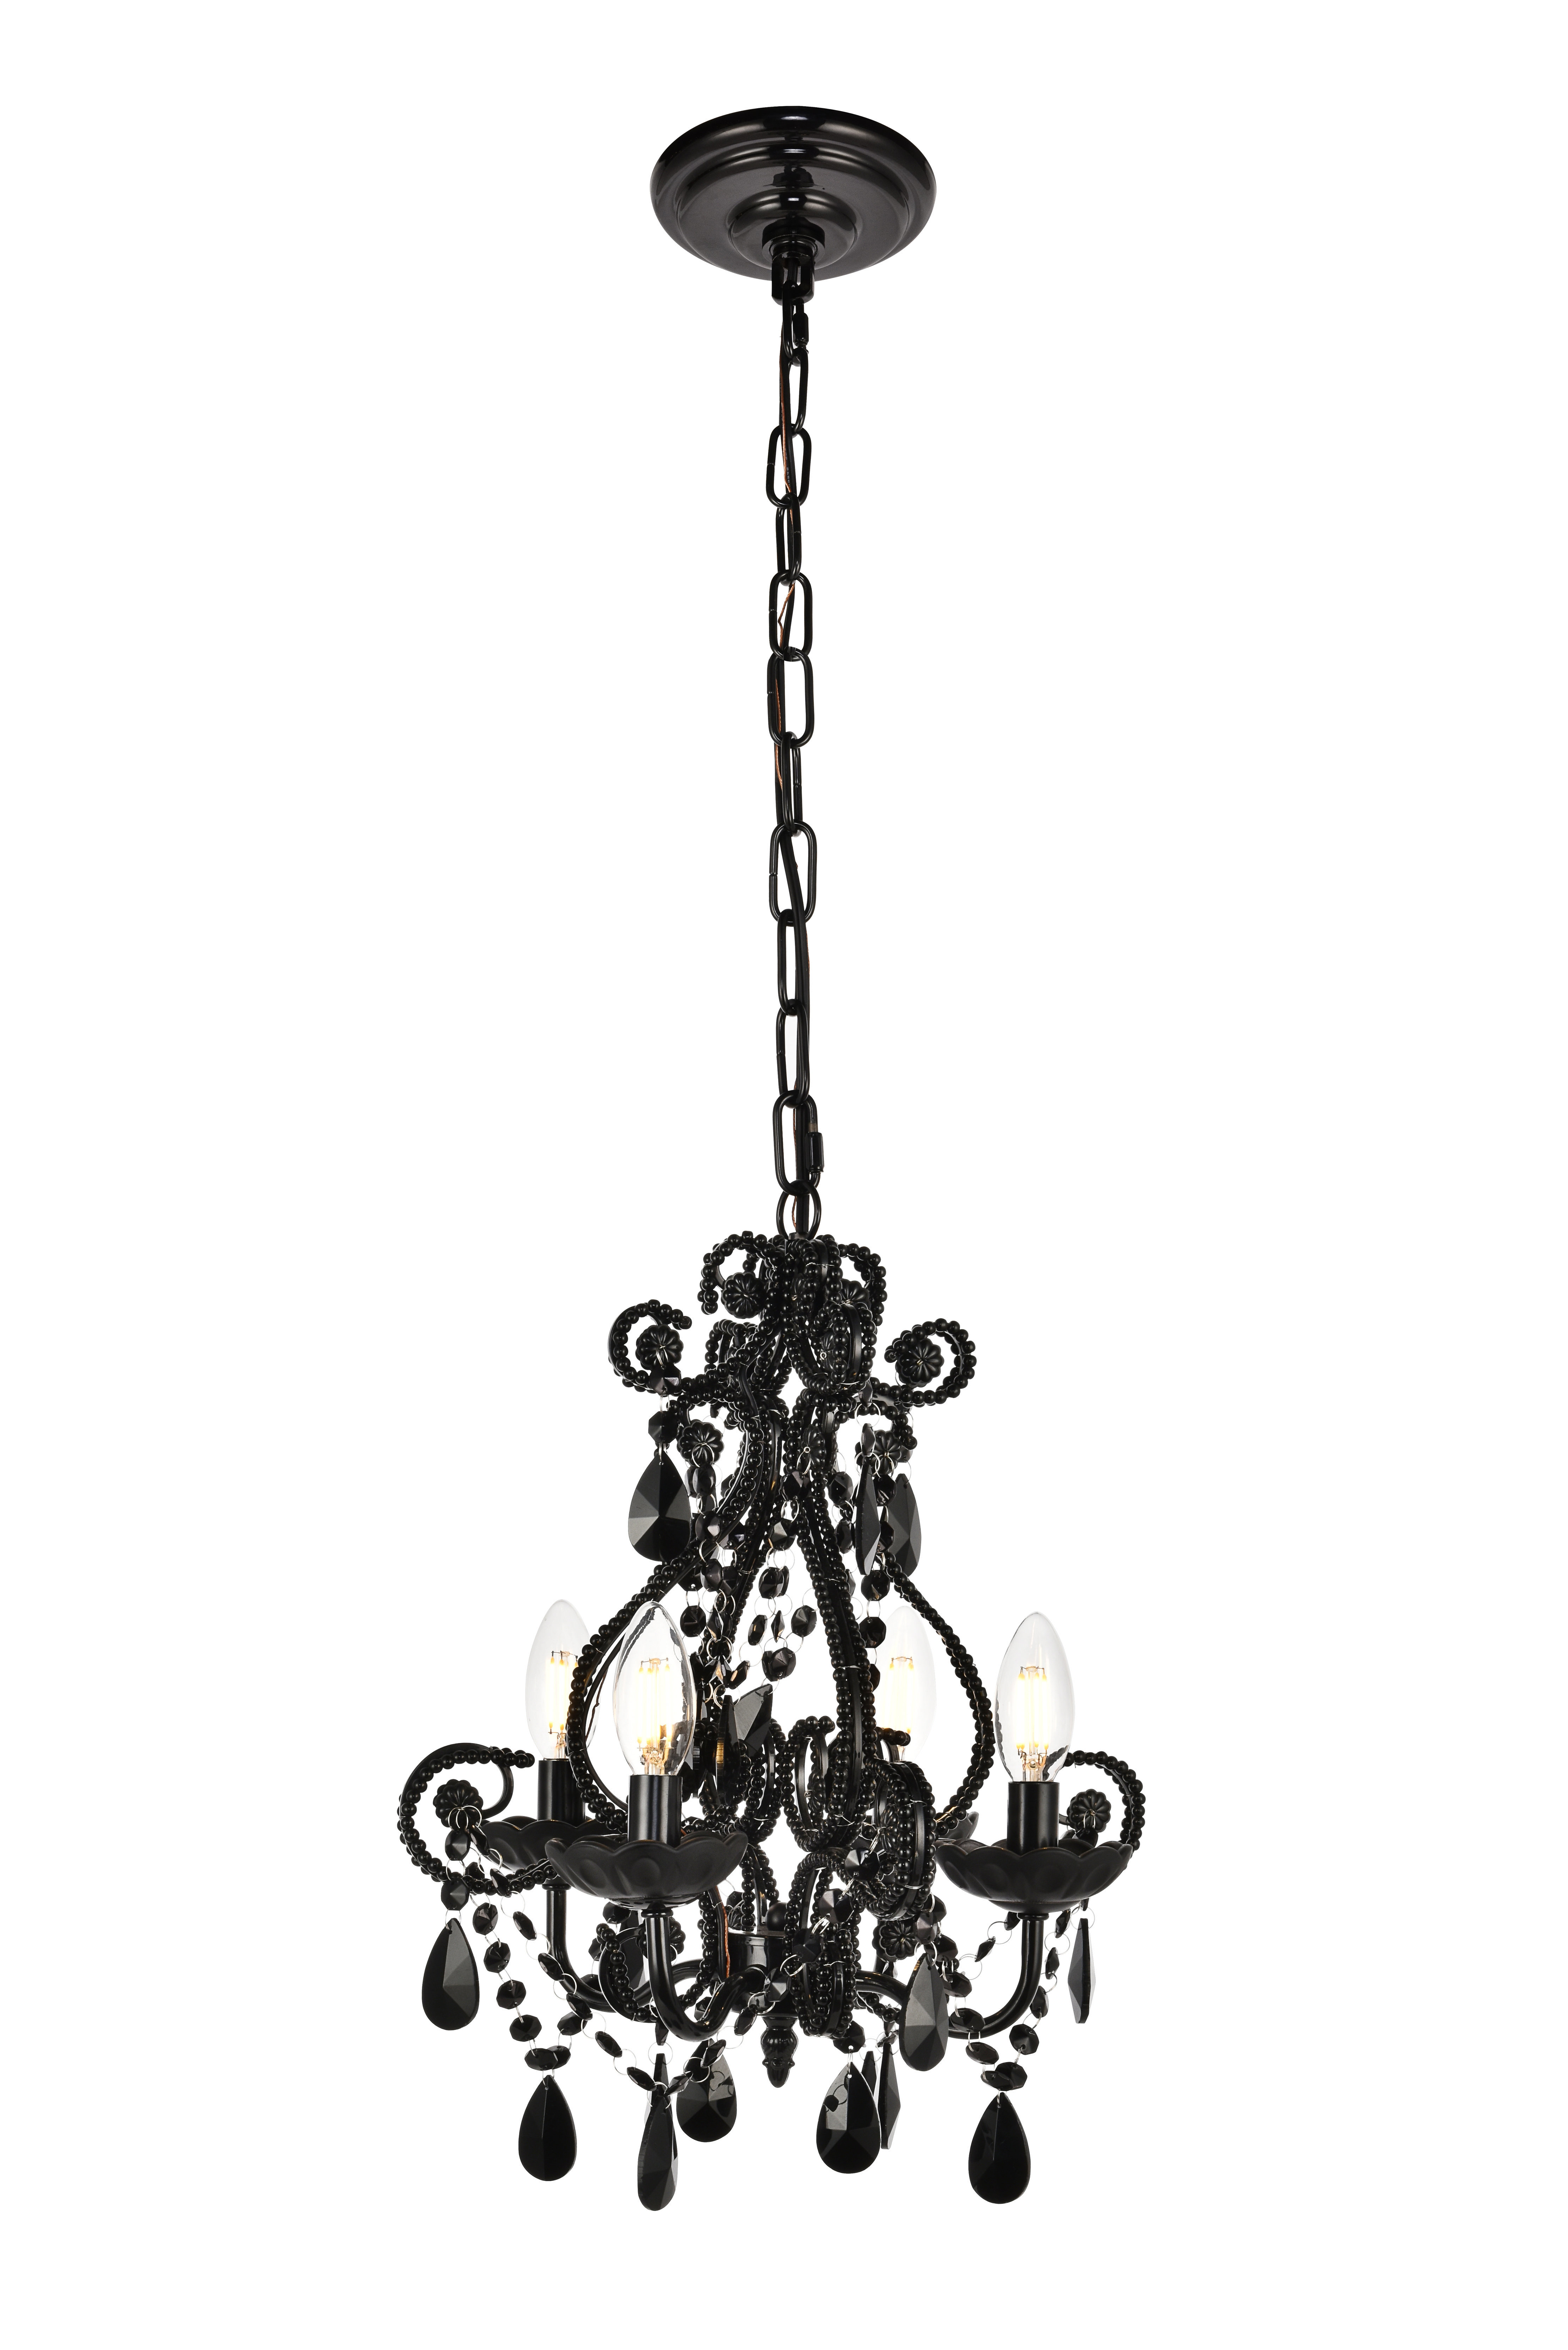 Newest Aldora 4 Light Candle Style Chandeliers Inside Burcott 4 Light Candle Style Chandelier (View 8 of 25)